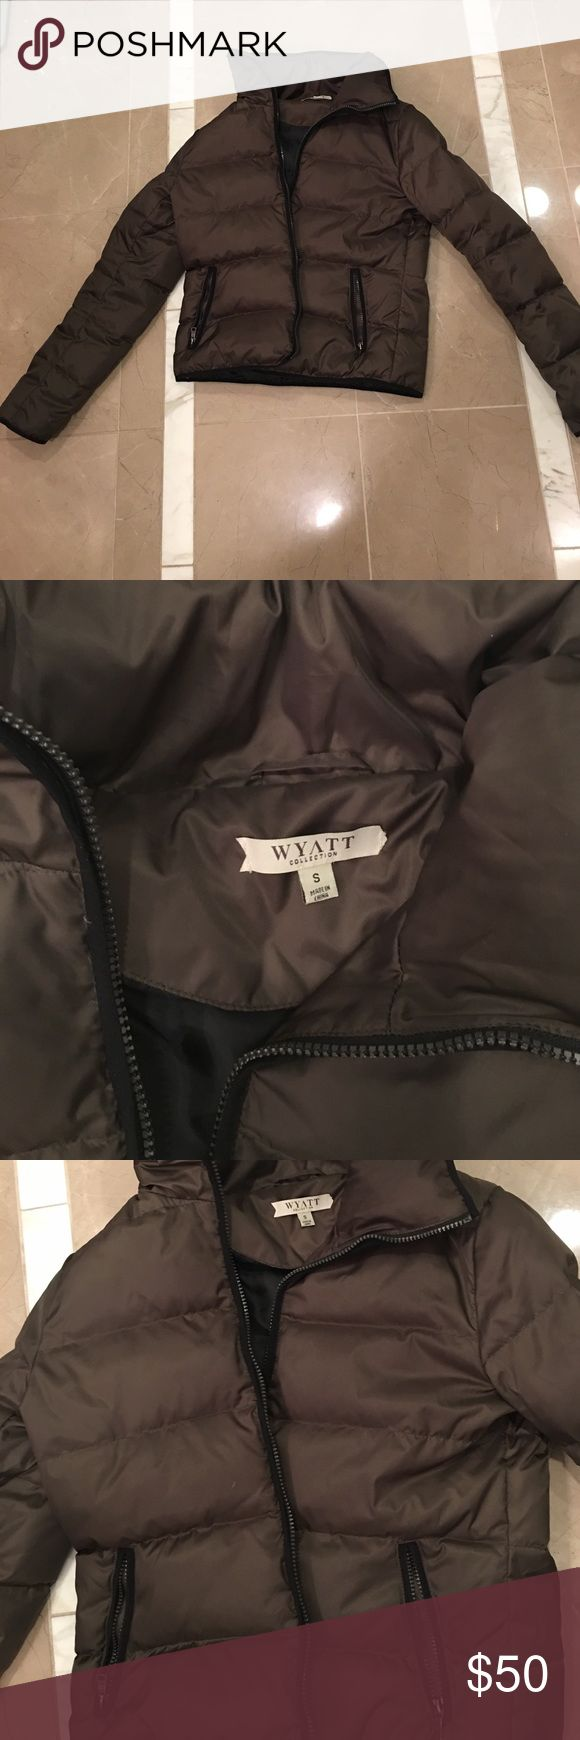 Olive Quilted Puffer Jacket Olive Down Filled Puffer Jacket. Beautiful olive color. Very lightweight and great for transitional weather. Size S. in excellent condition, only worn a few times. Open to offers. Jackets & Coats Puffers